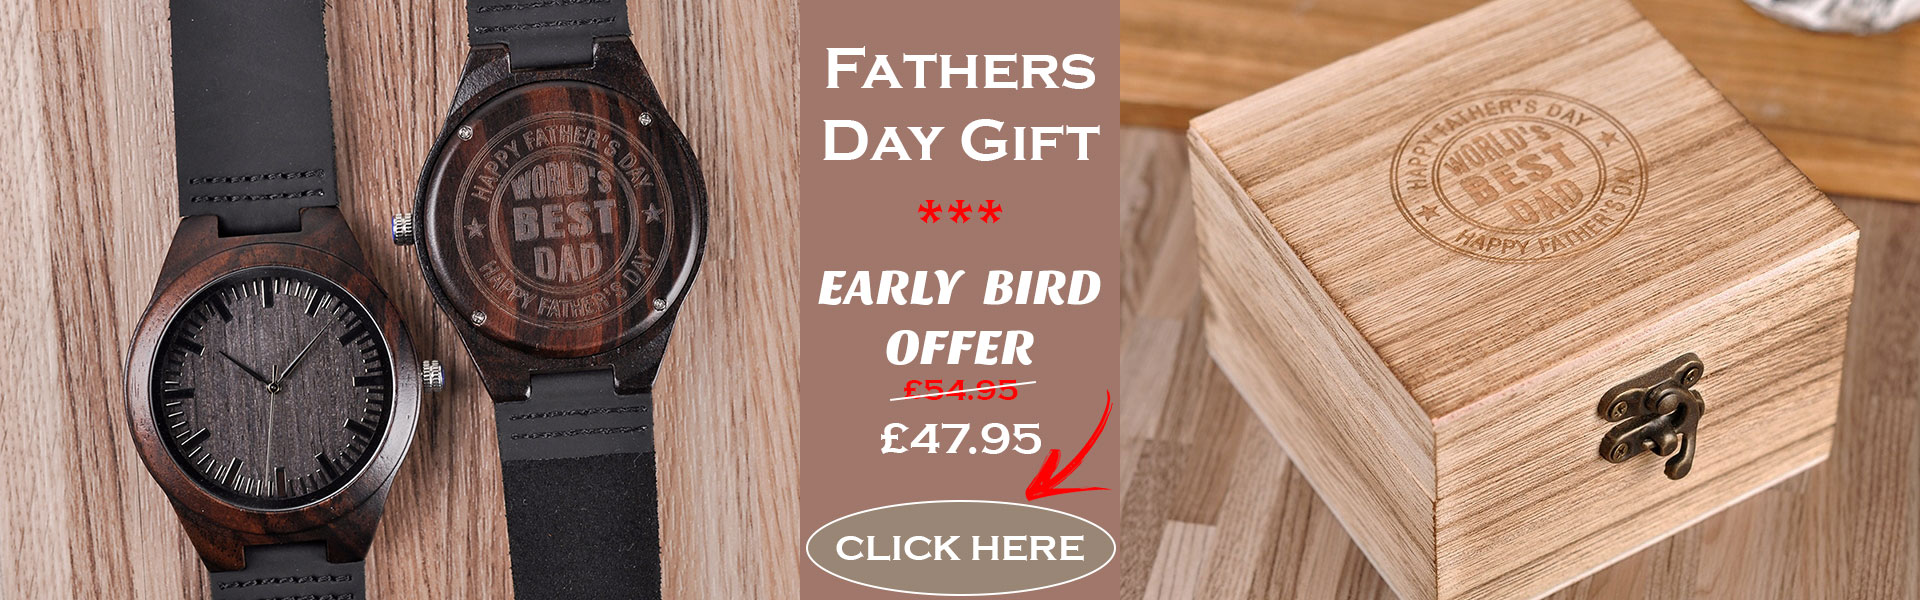 fathers day offer bobo bird wooden watch uk